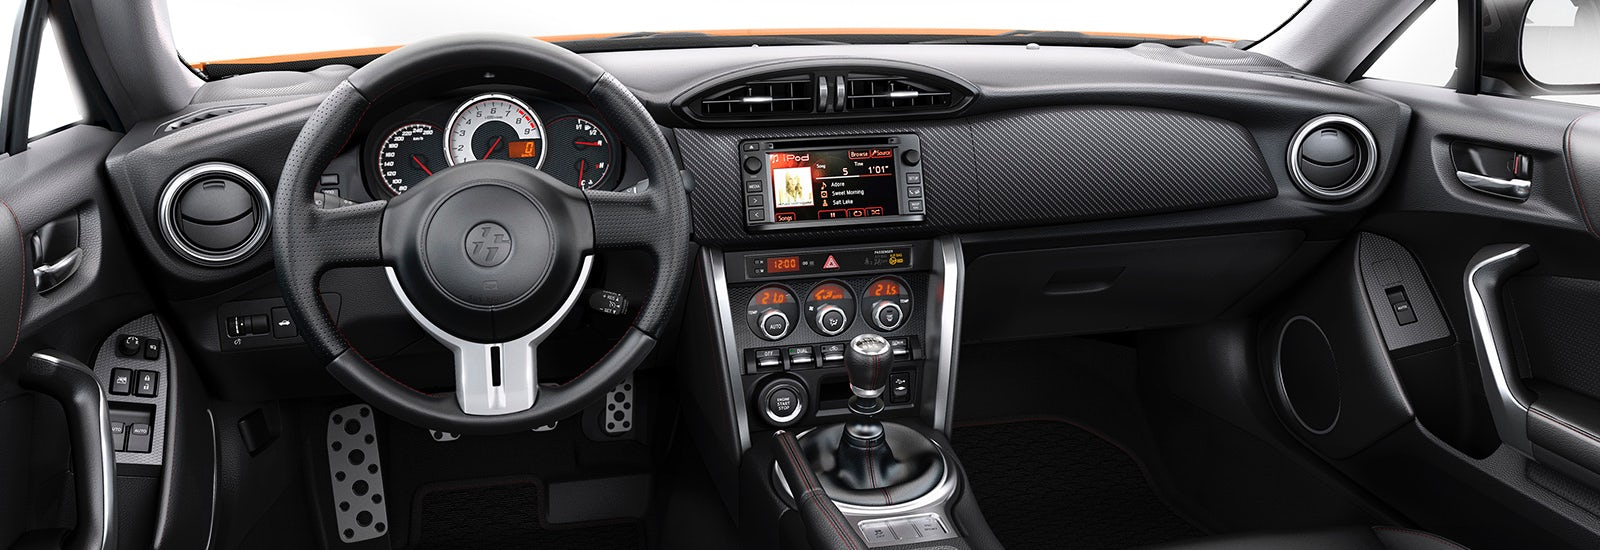 Facelifted 2016 Toyota GT86: complete guide | carwow